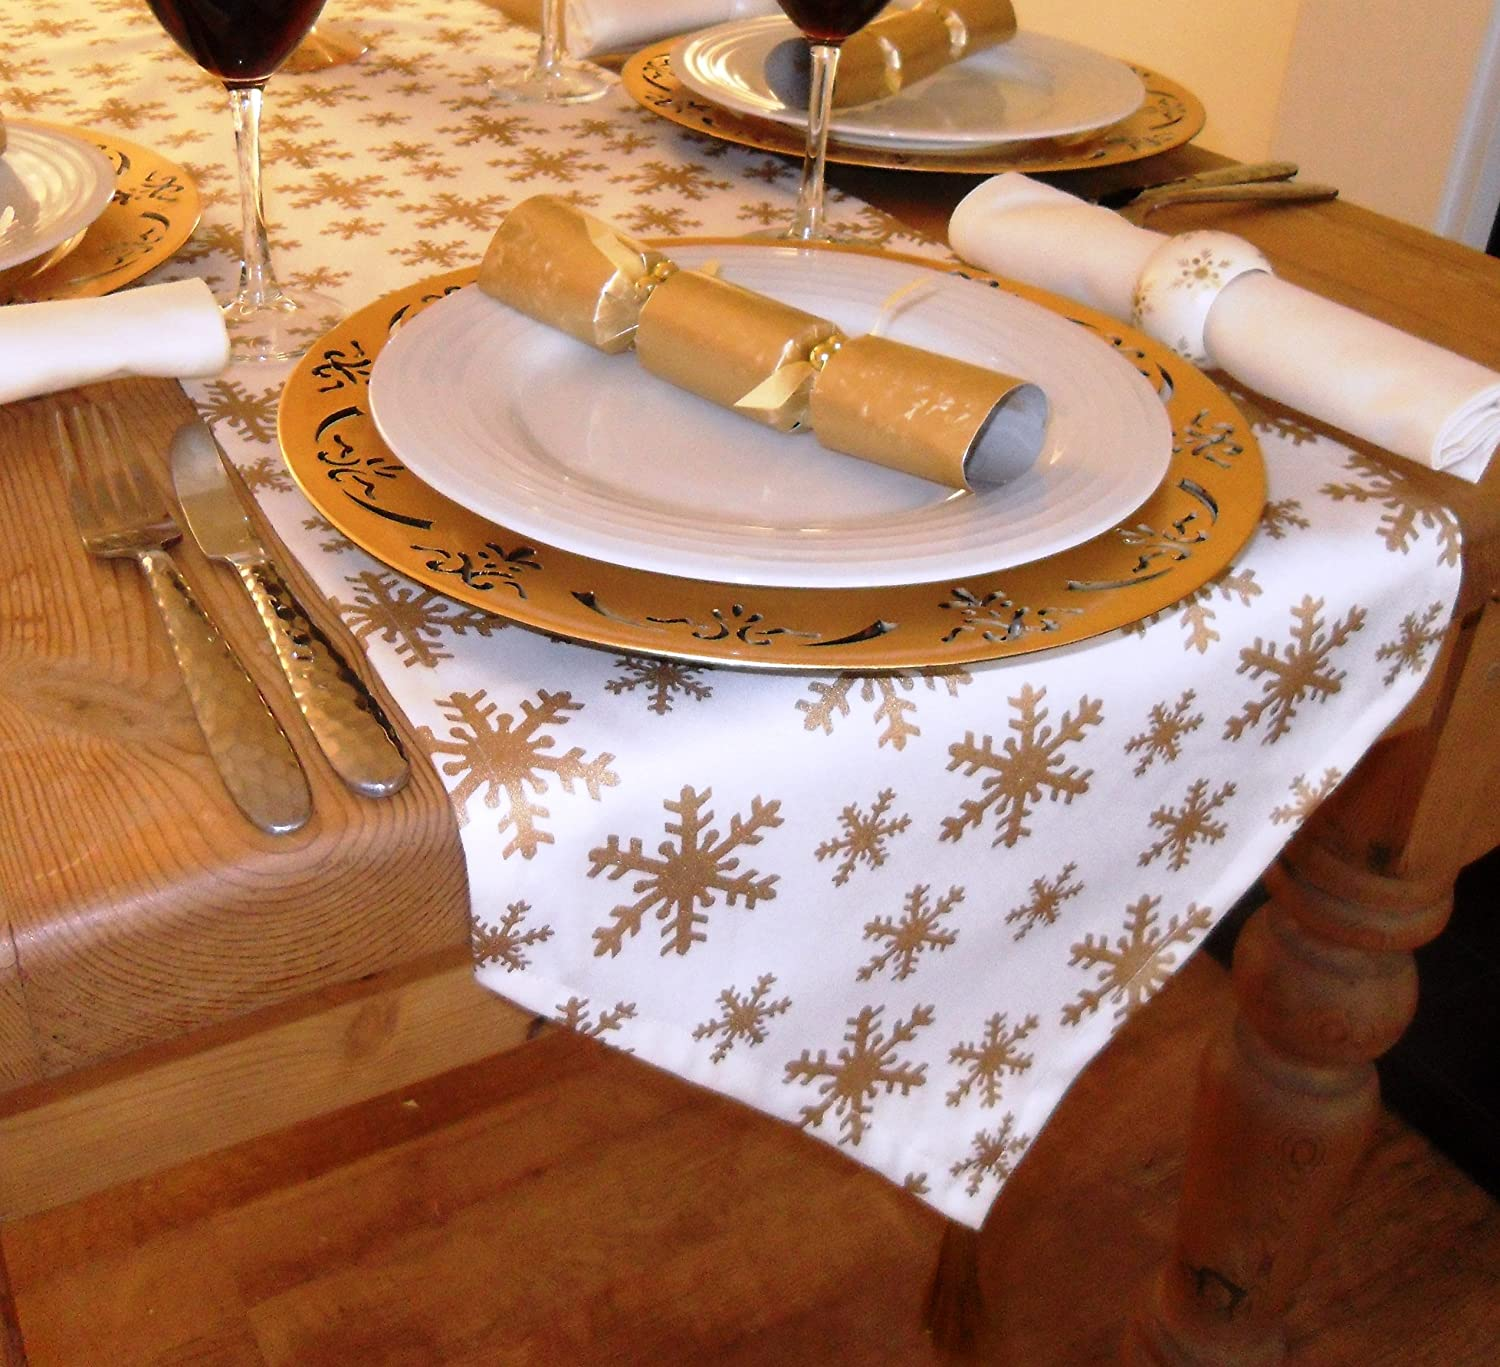 GOLD SNOWFLAKE CHRISTMAS TABLE RUNNER Amazon Kitchen